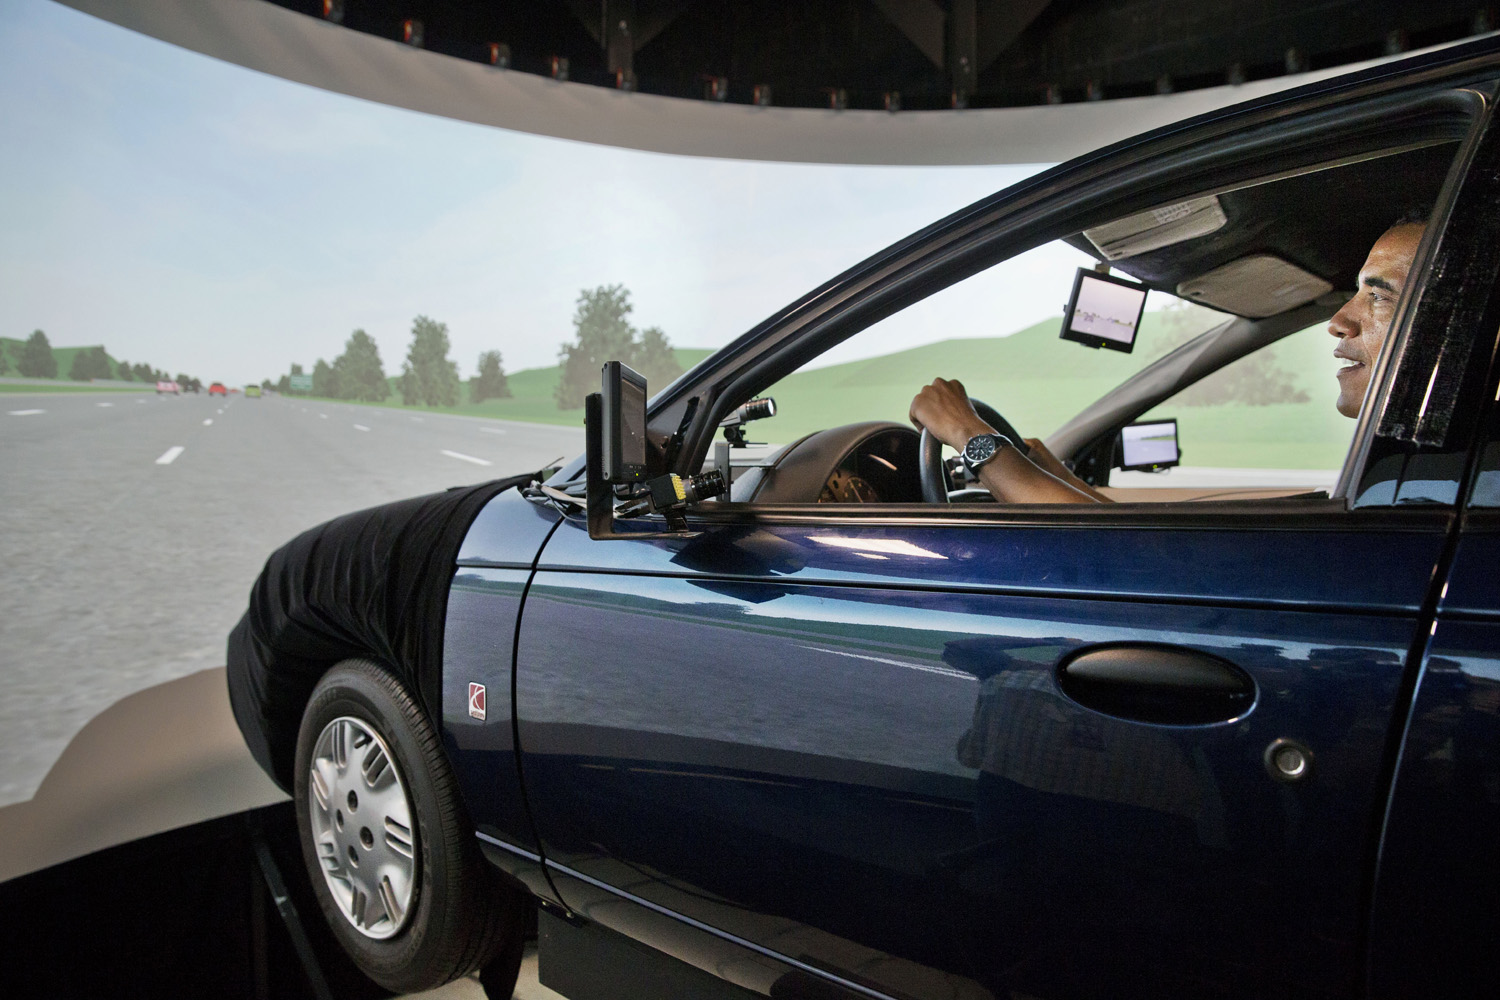 President Barack Obama smiles as he tries out a driving simulation during a tour of the Turner-Fairbank Highway Research Center in McLean, Va. on July 15, 2014.